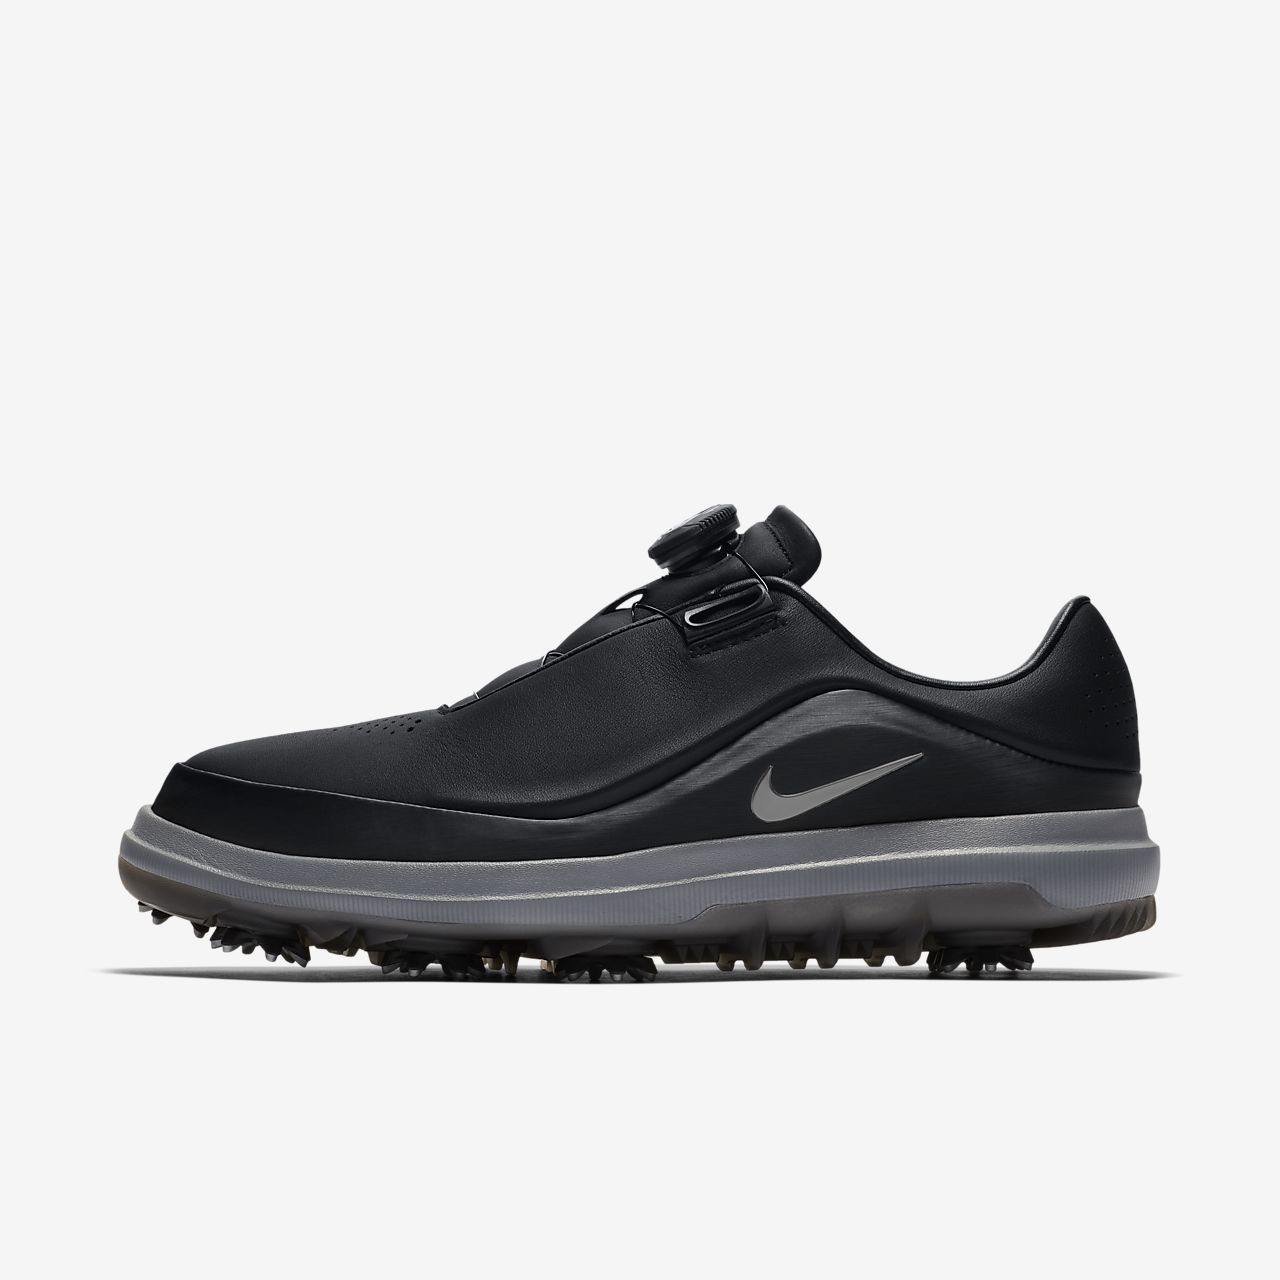 4655aa5f3 Nike Air Zoom Precision BOA ® Men s Golf Shoe. Nike.com CA